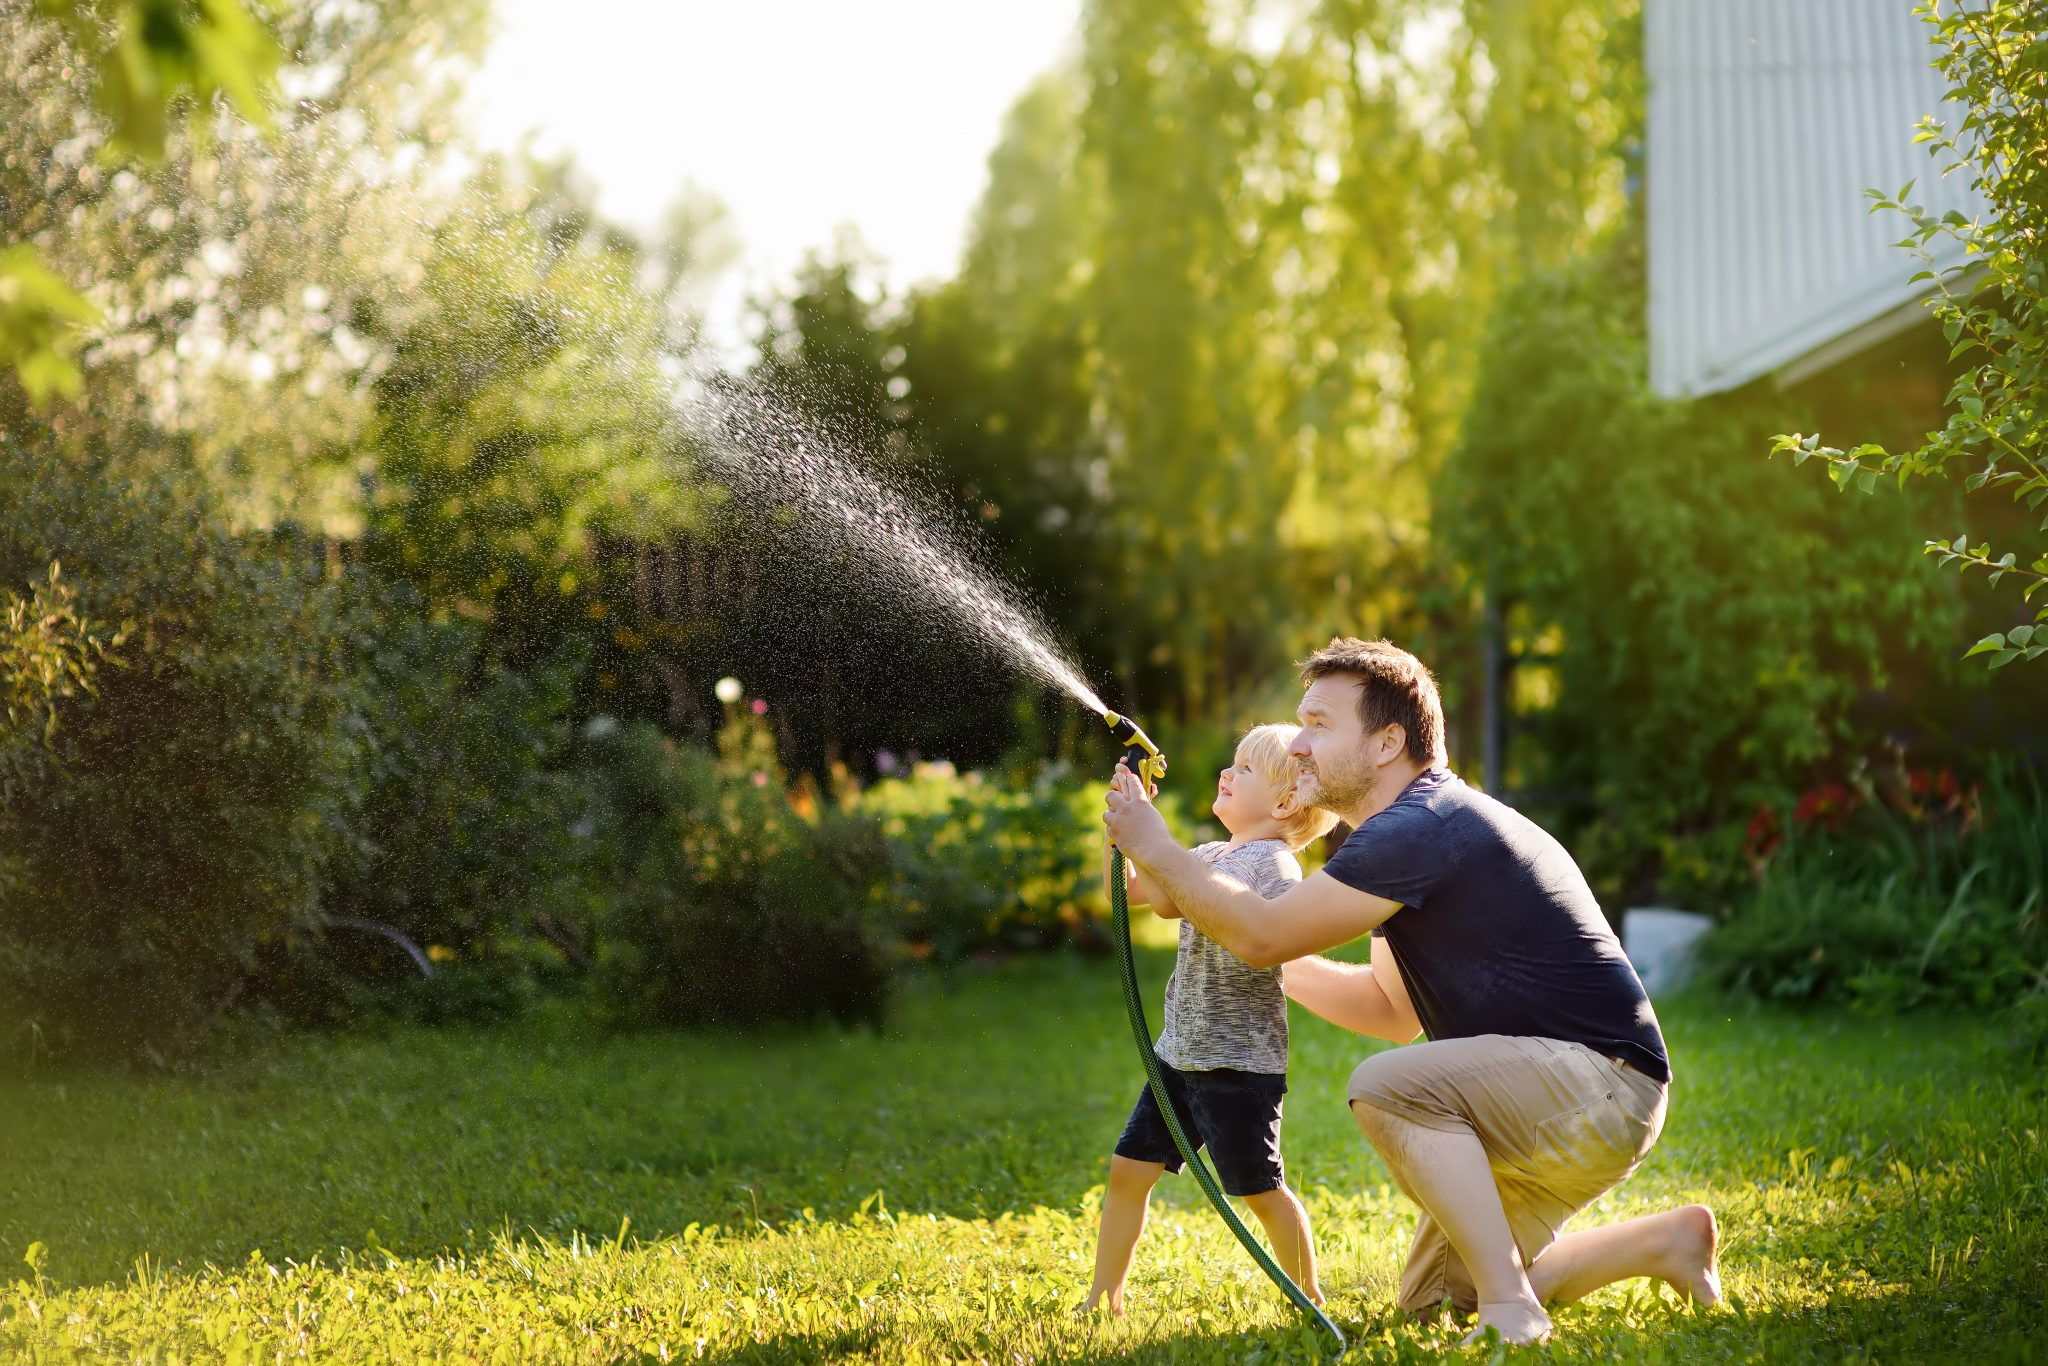 Funny little boy with his father playing with garden hose in sunny backyard